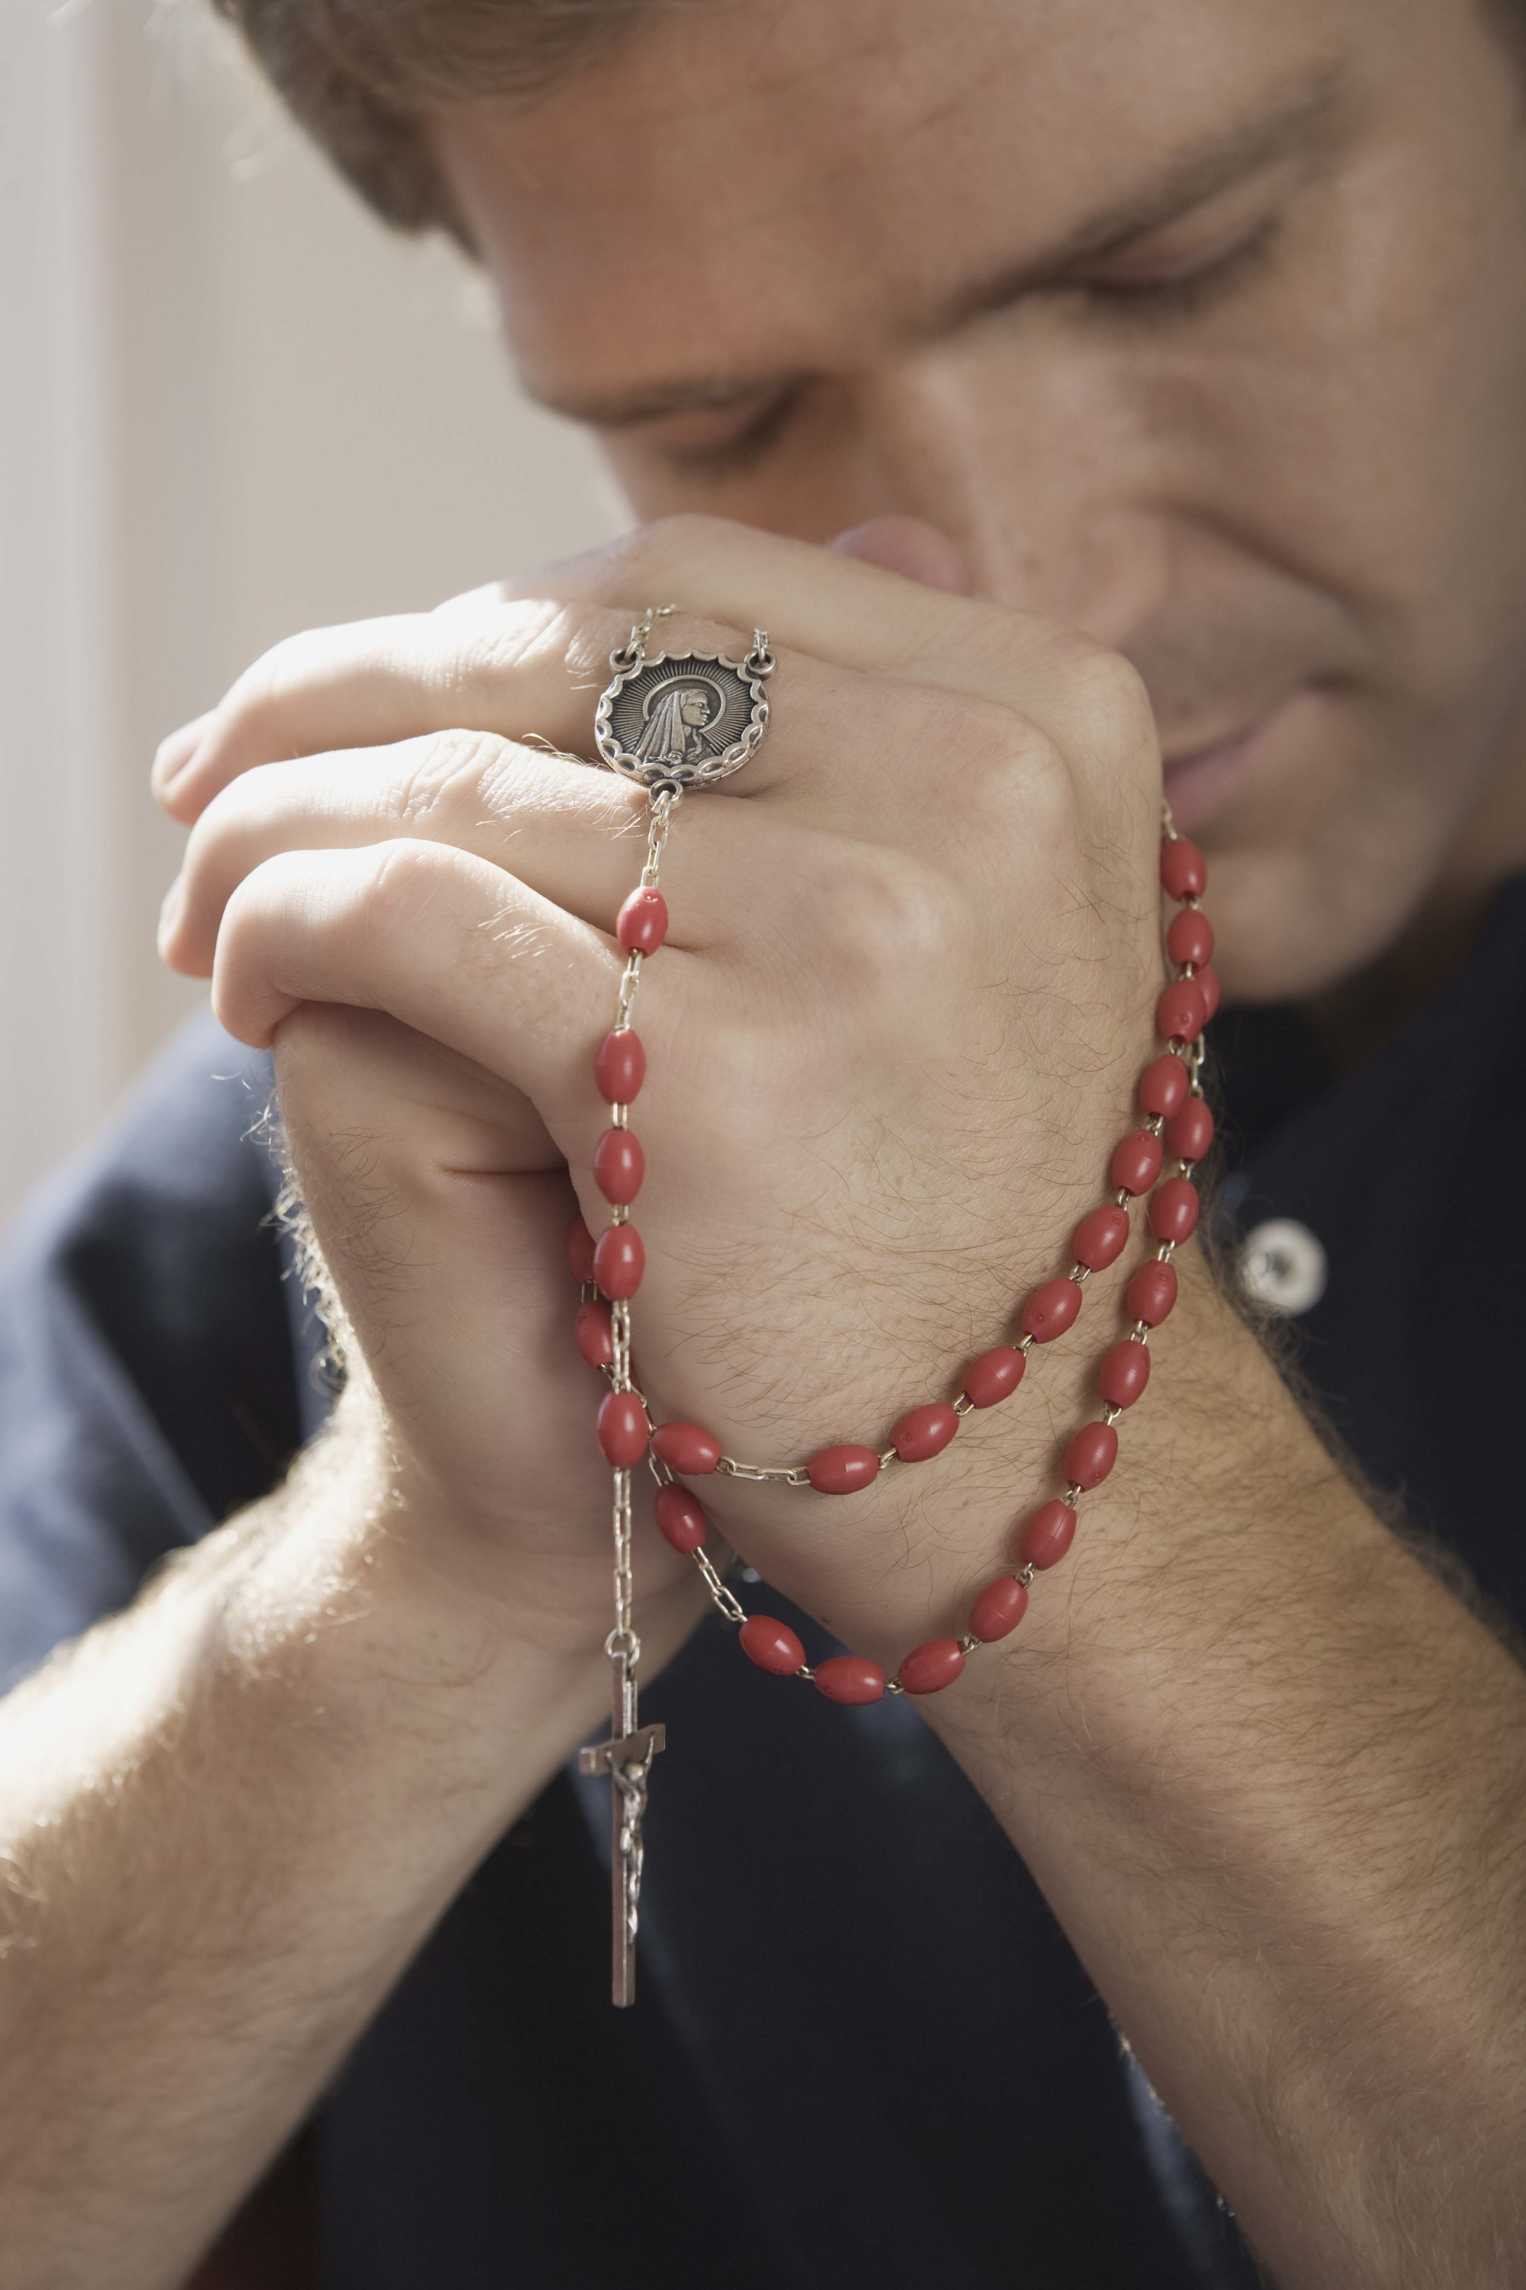 How Do I Bless My Own Rosary?